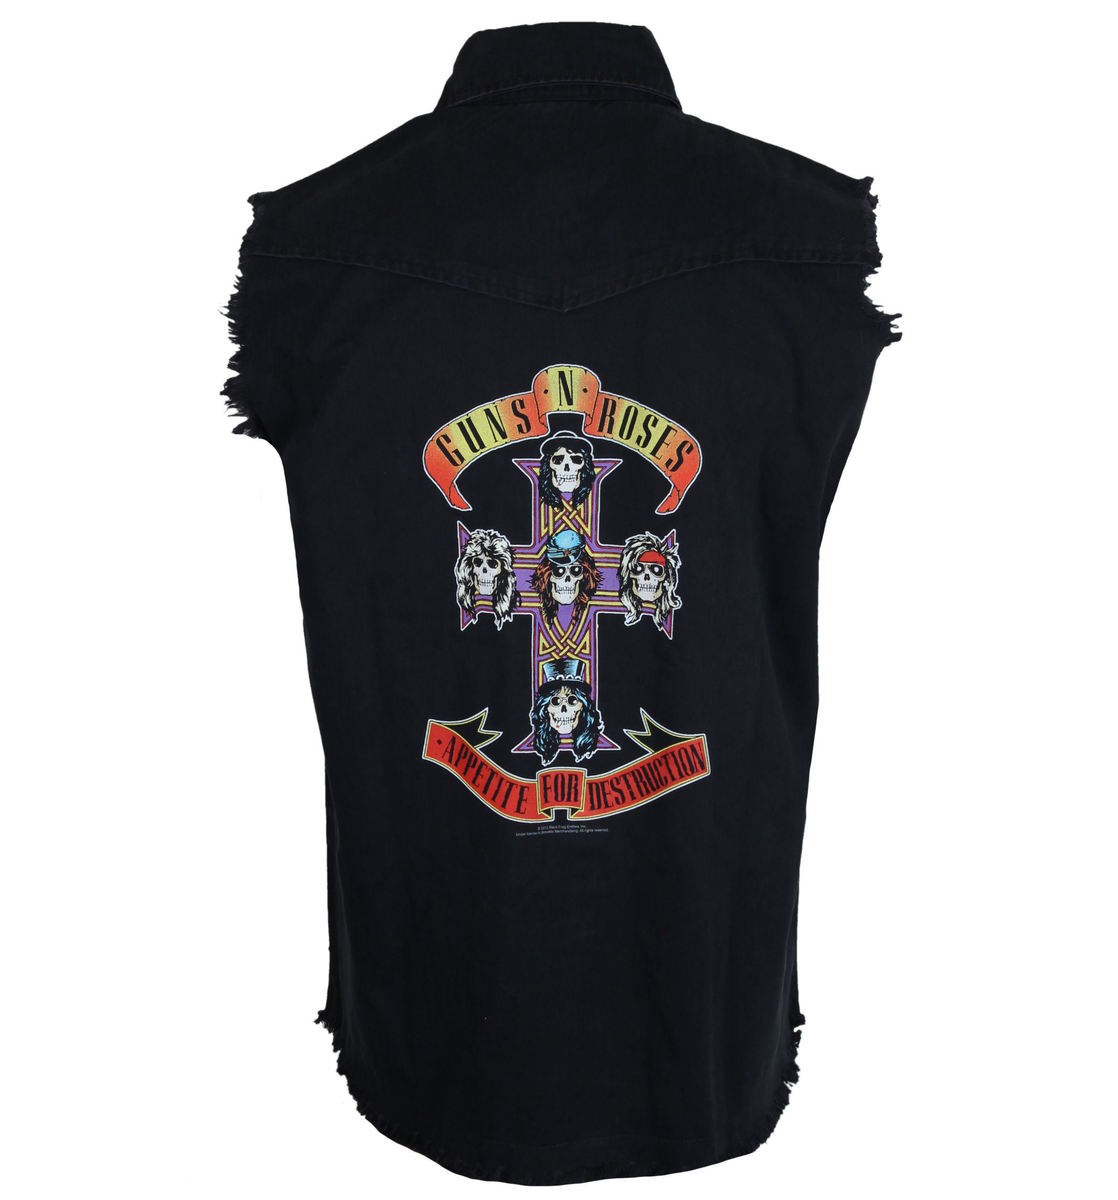 vesta pánské Guns N Roses - Appetite For Destruction - RAZAMATAZ - WS051